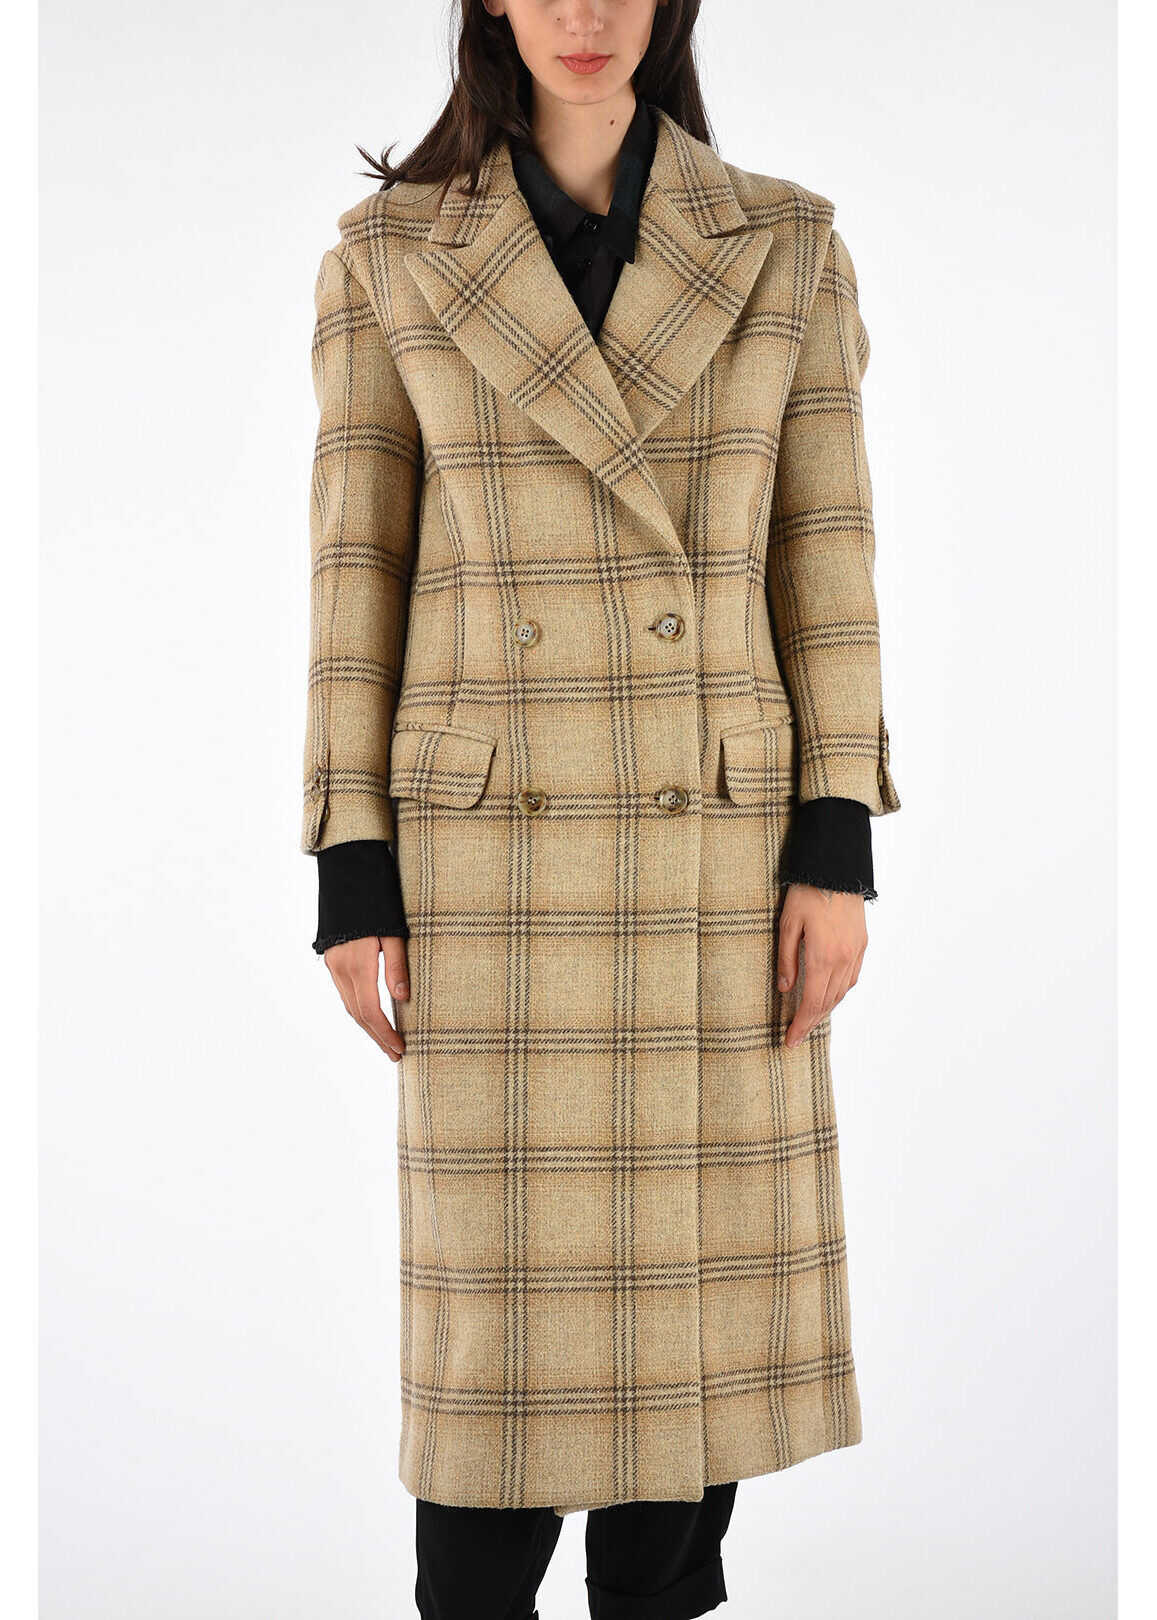 MM6 Checked Coat